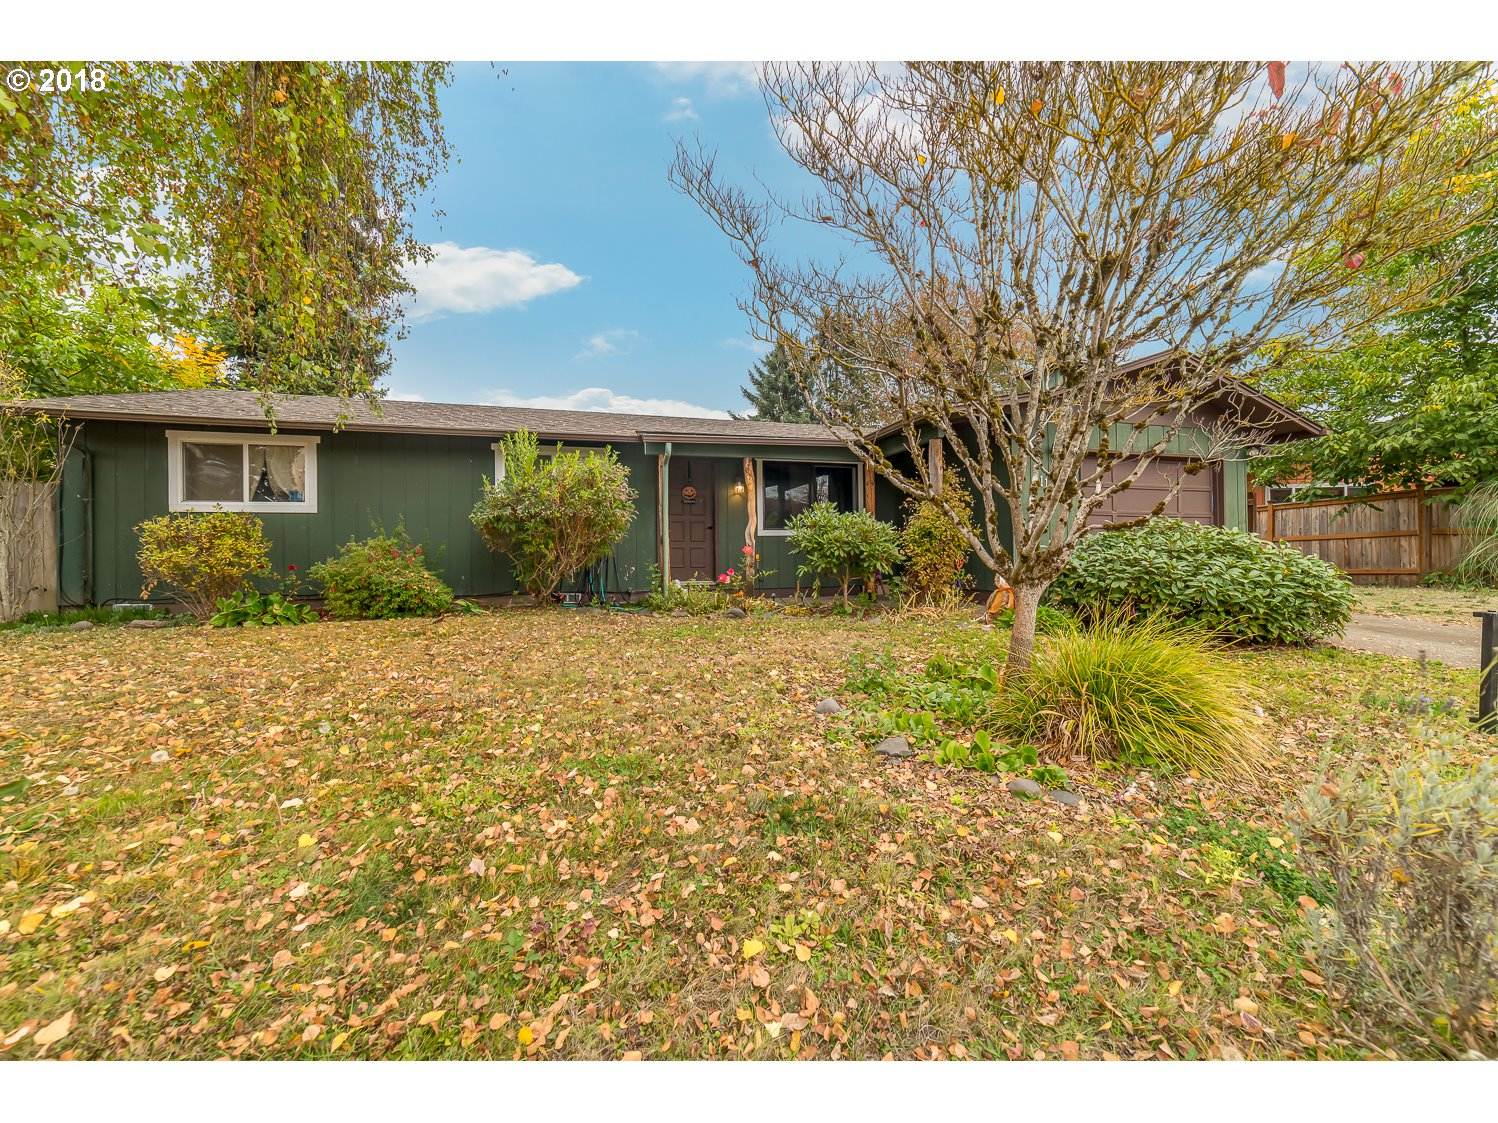 1107 57TH ST Springfield, OR 97478 - MLS #: 18574557